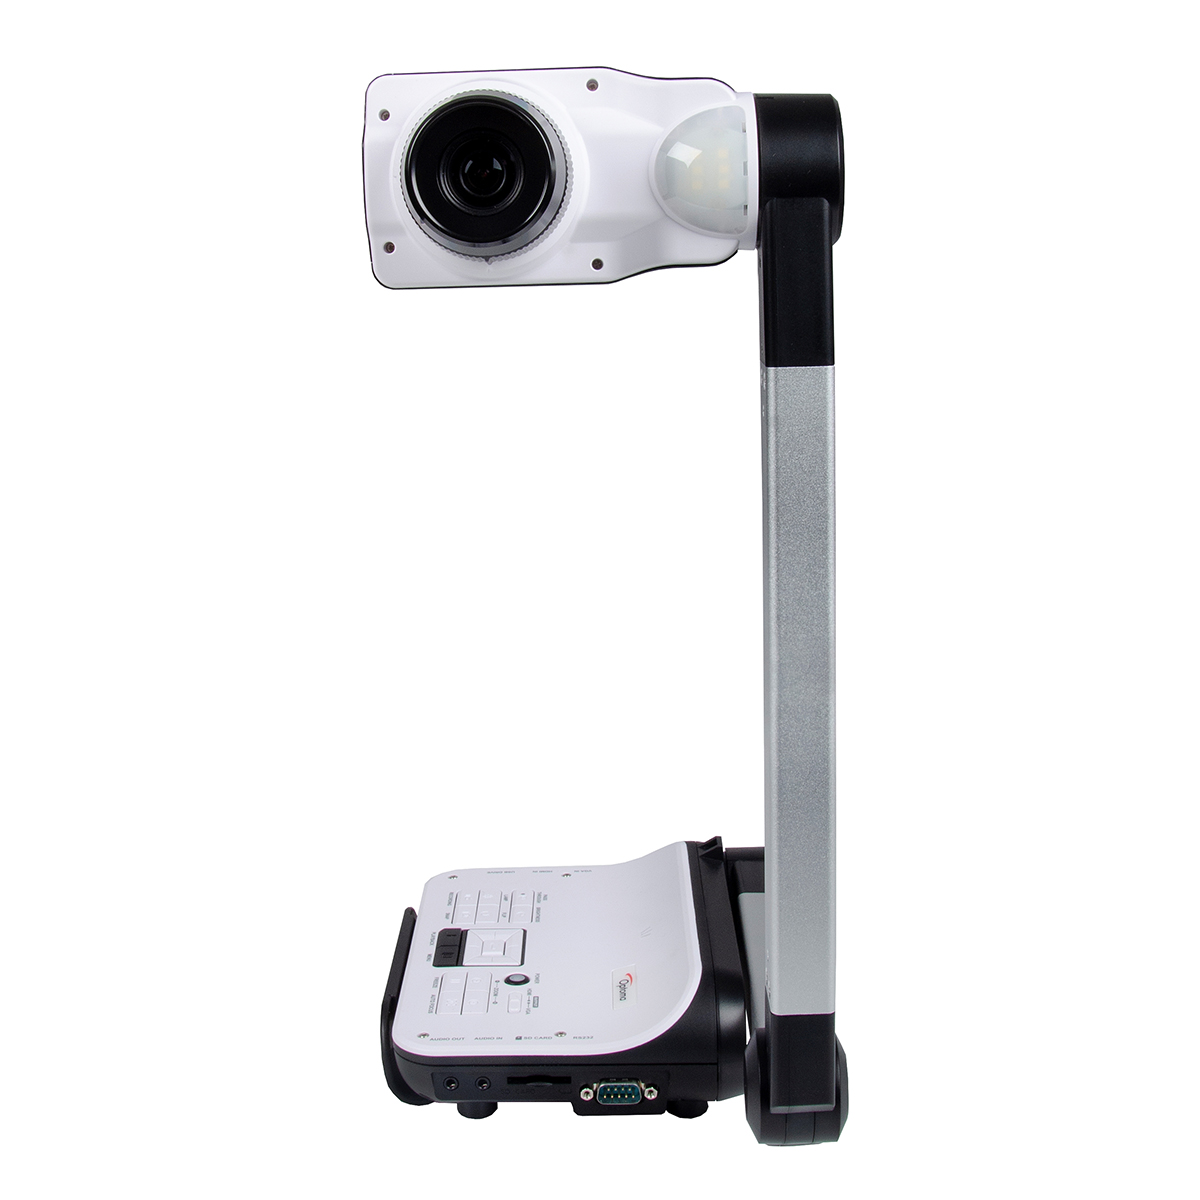 Optoma DC556 13MP Document Camera with 4K video preview